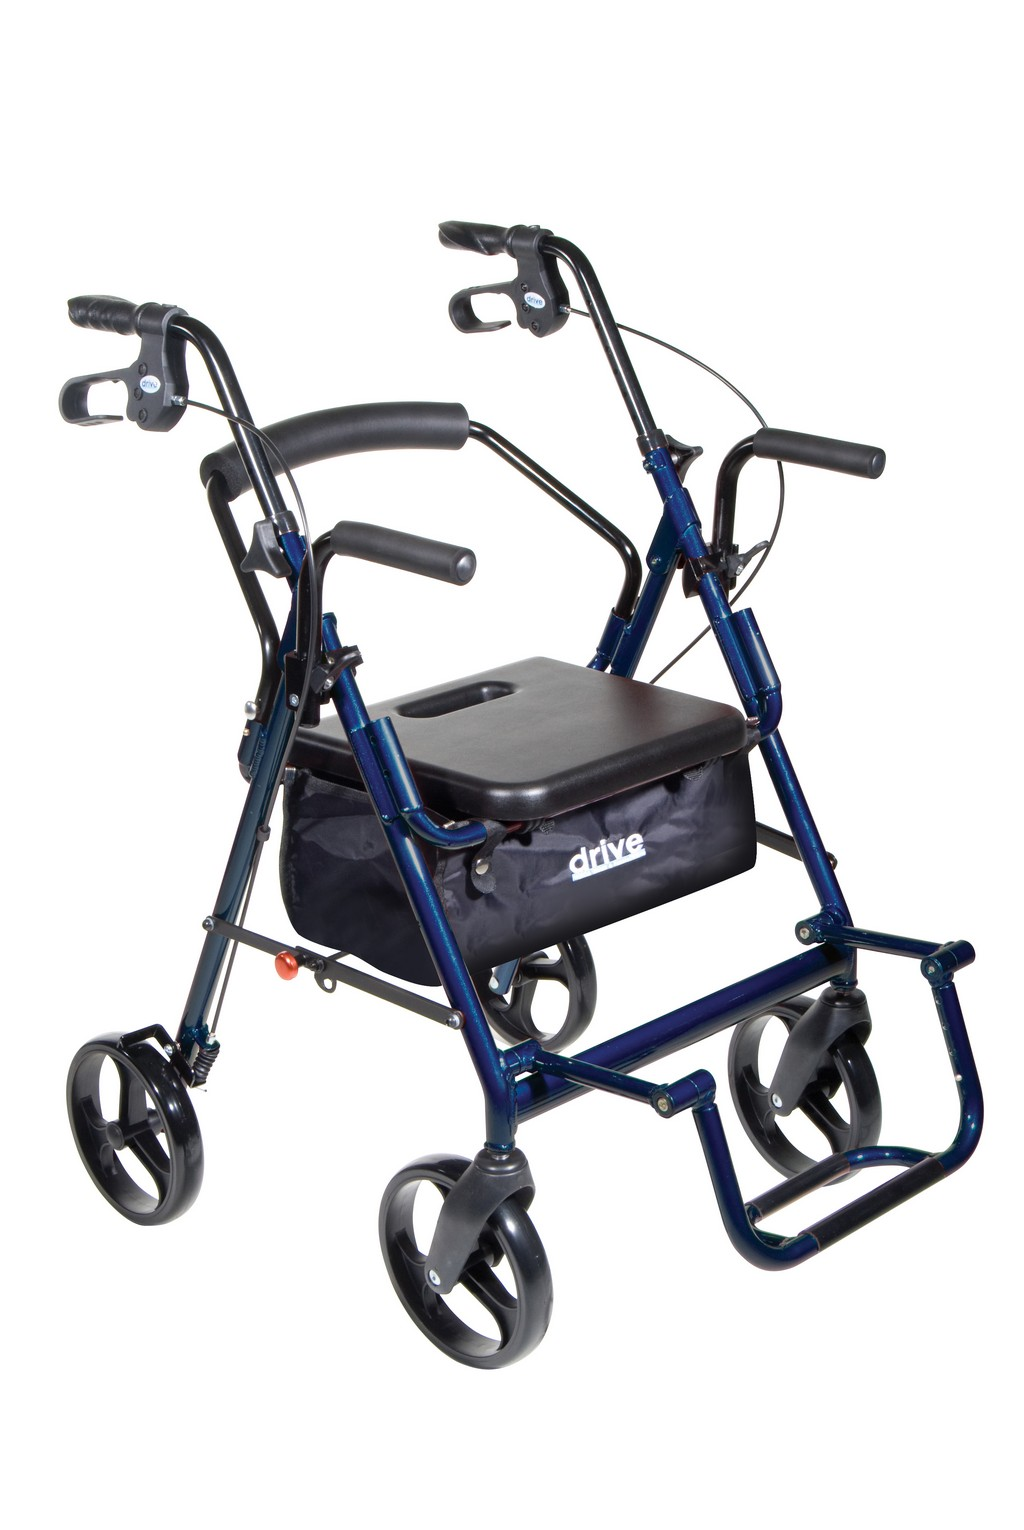 medline rollator walker parts, three wheeled rollators, rollator how to choose, drive walker rollator